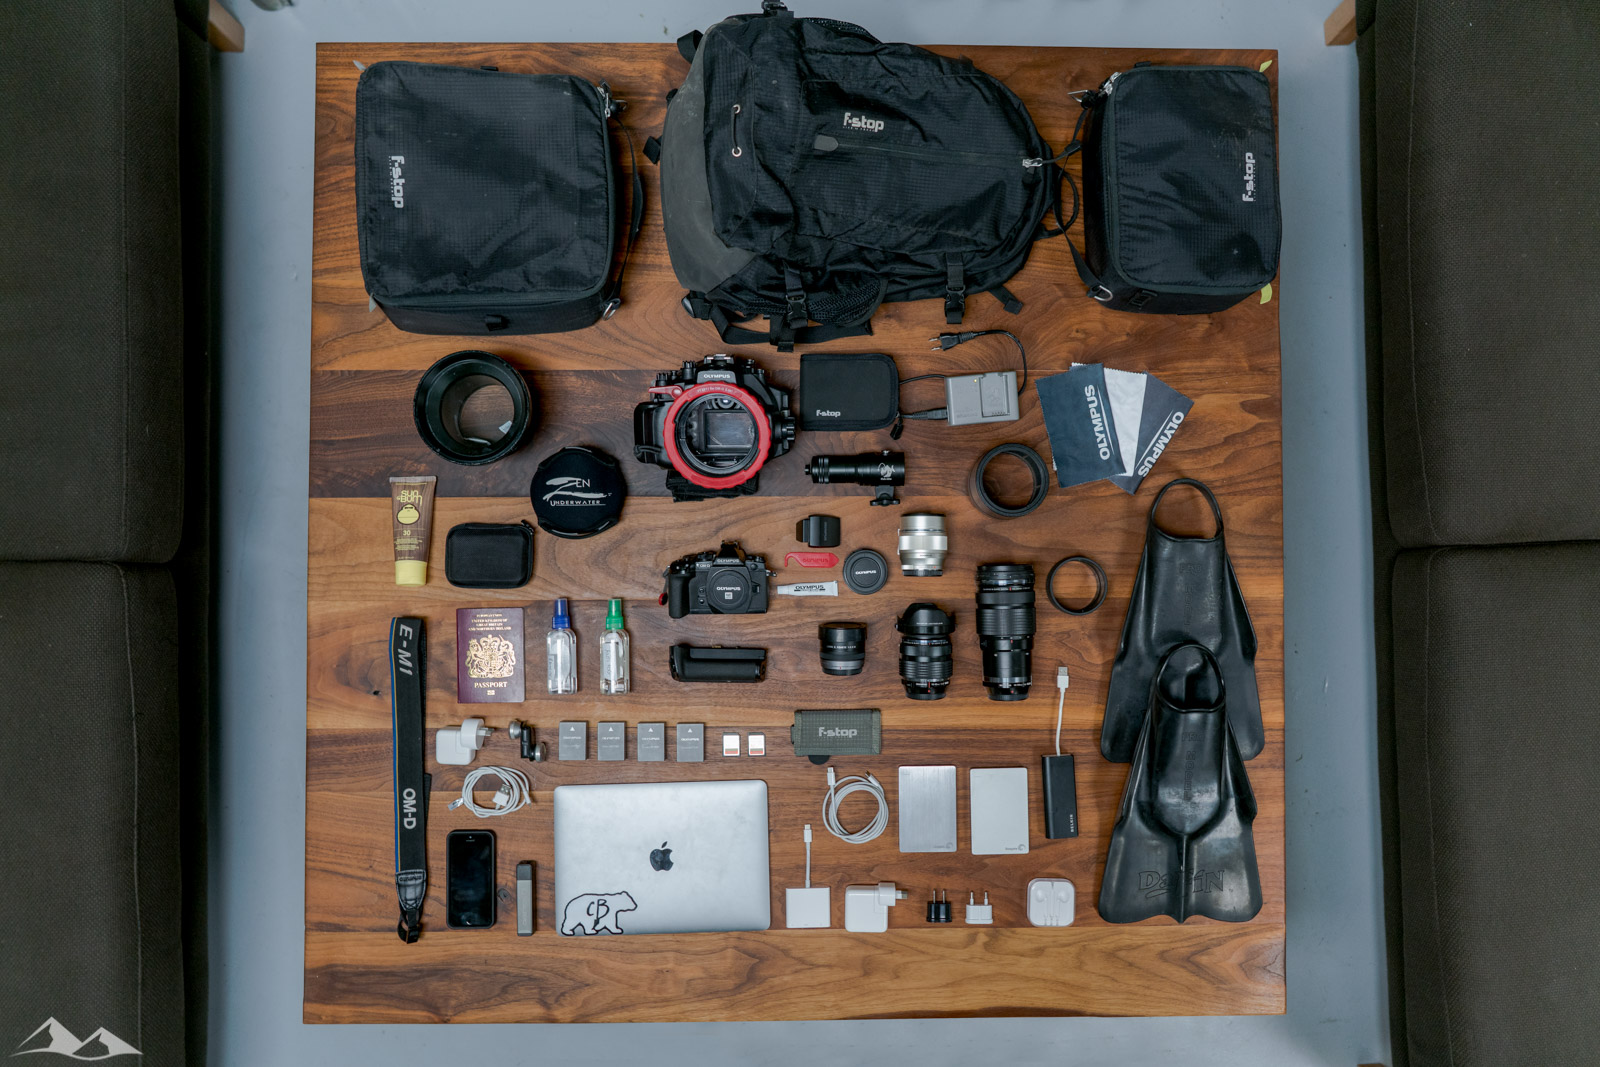 My camera gear laid out flat on the table